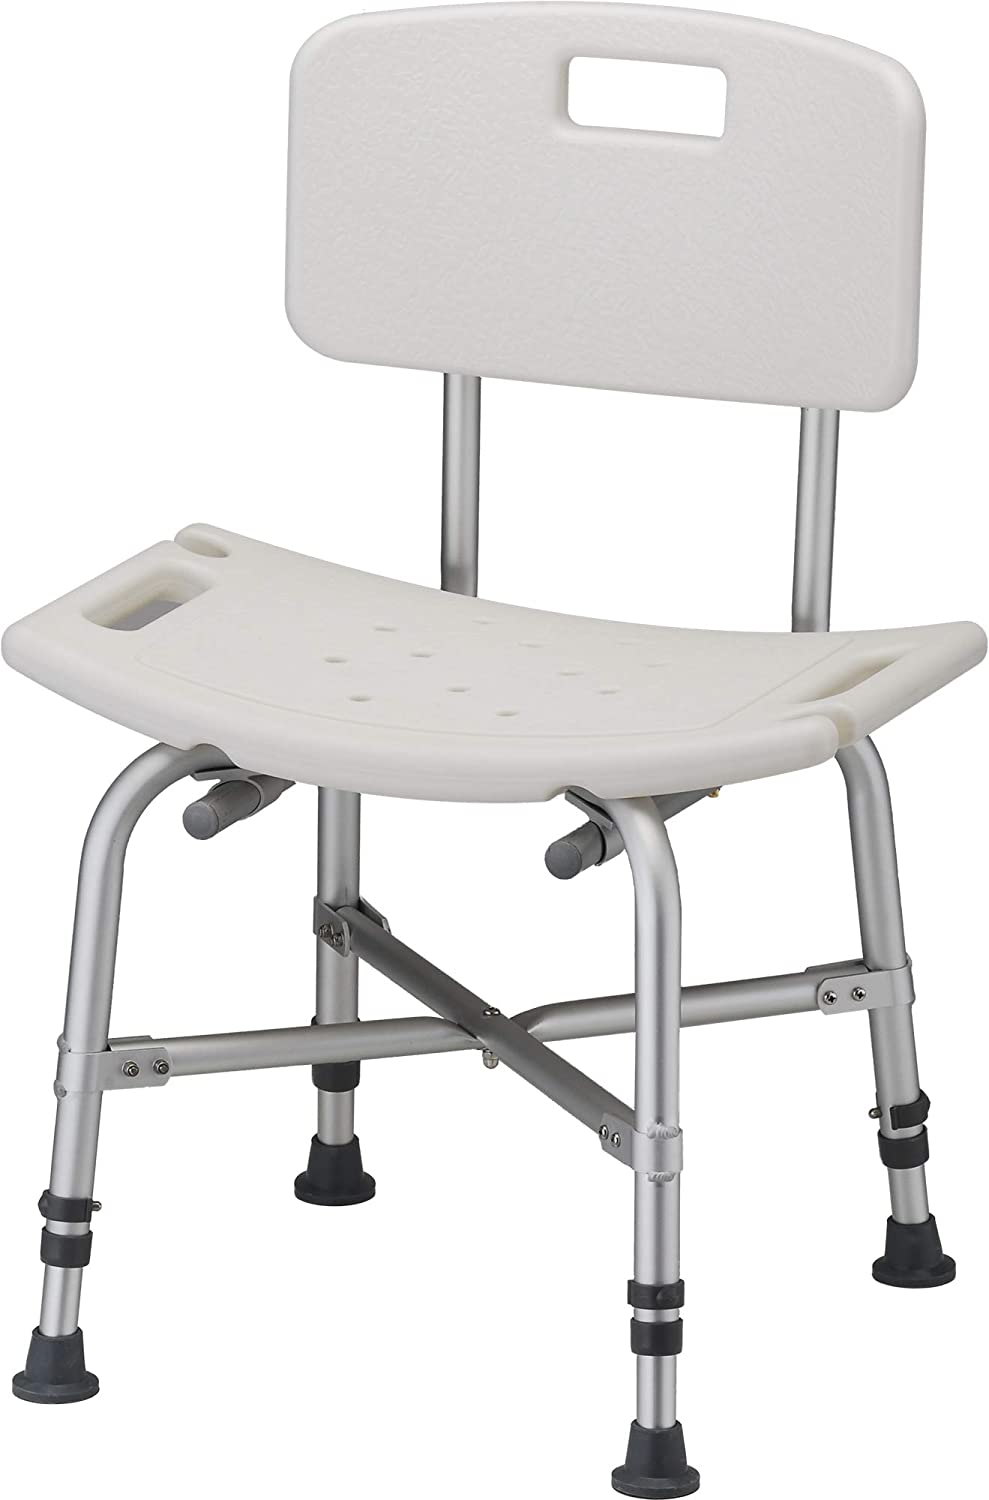 NOVA Medical Products Heavy Duty Shower & Bath Chair with Back, 500 lb. Weight Capacity, Quick & Easy Tools Free Assembly, Lightweight & Seat Height Adjustable, Great for Travel, White